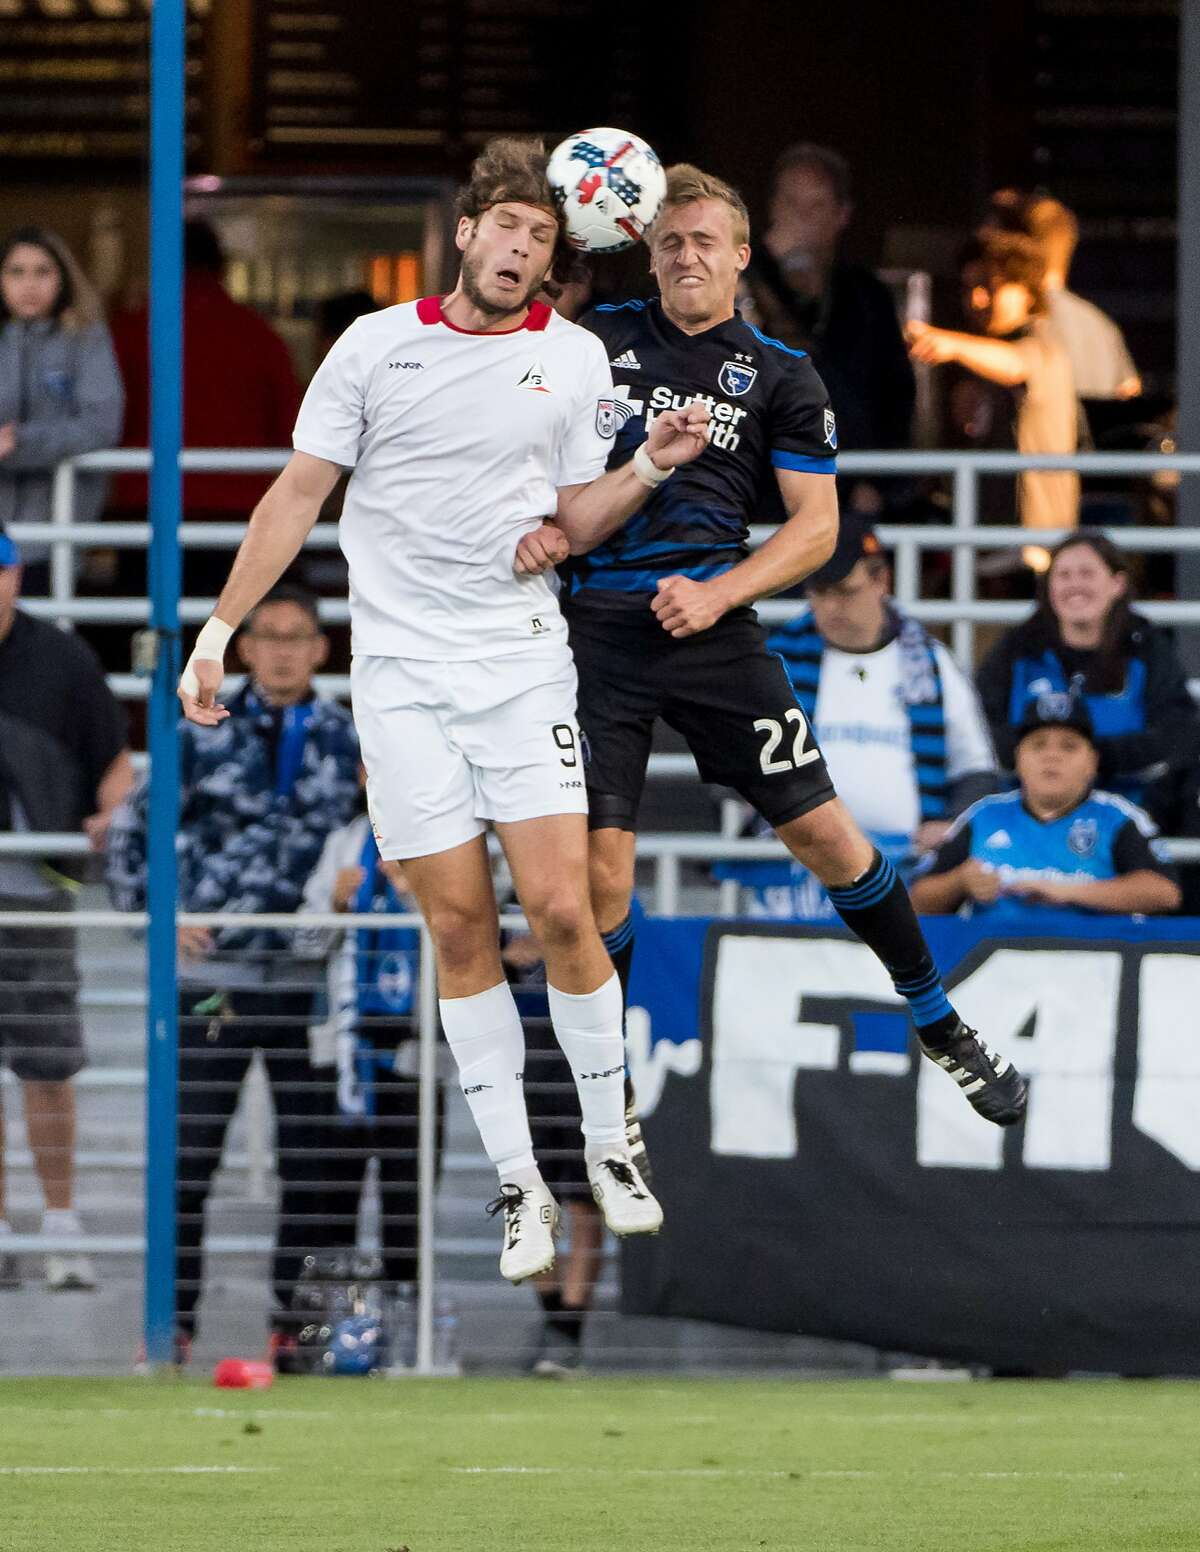 San Francisco Deltas forward Tommy Heinemann (9) and San Jose Earthquakes forward Tommy Thompson (22) go up for a header during the US Open Cup game at Avaya Stadium in San Jose on June 14, 2017.